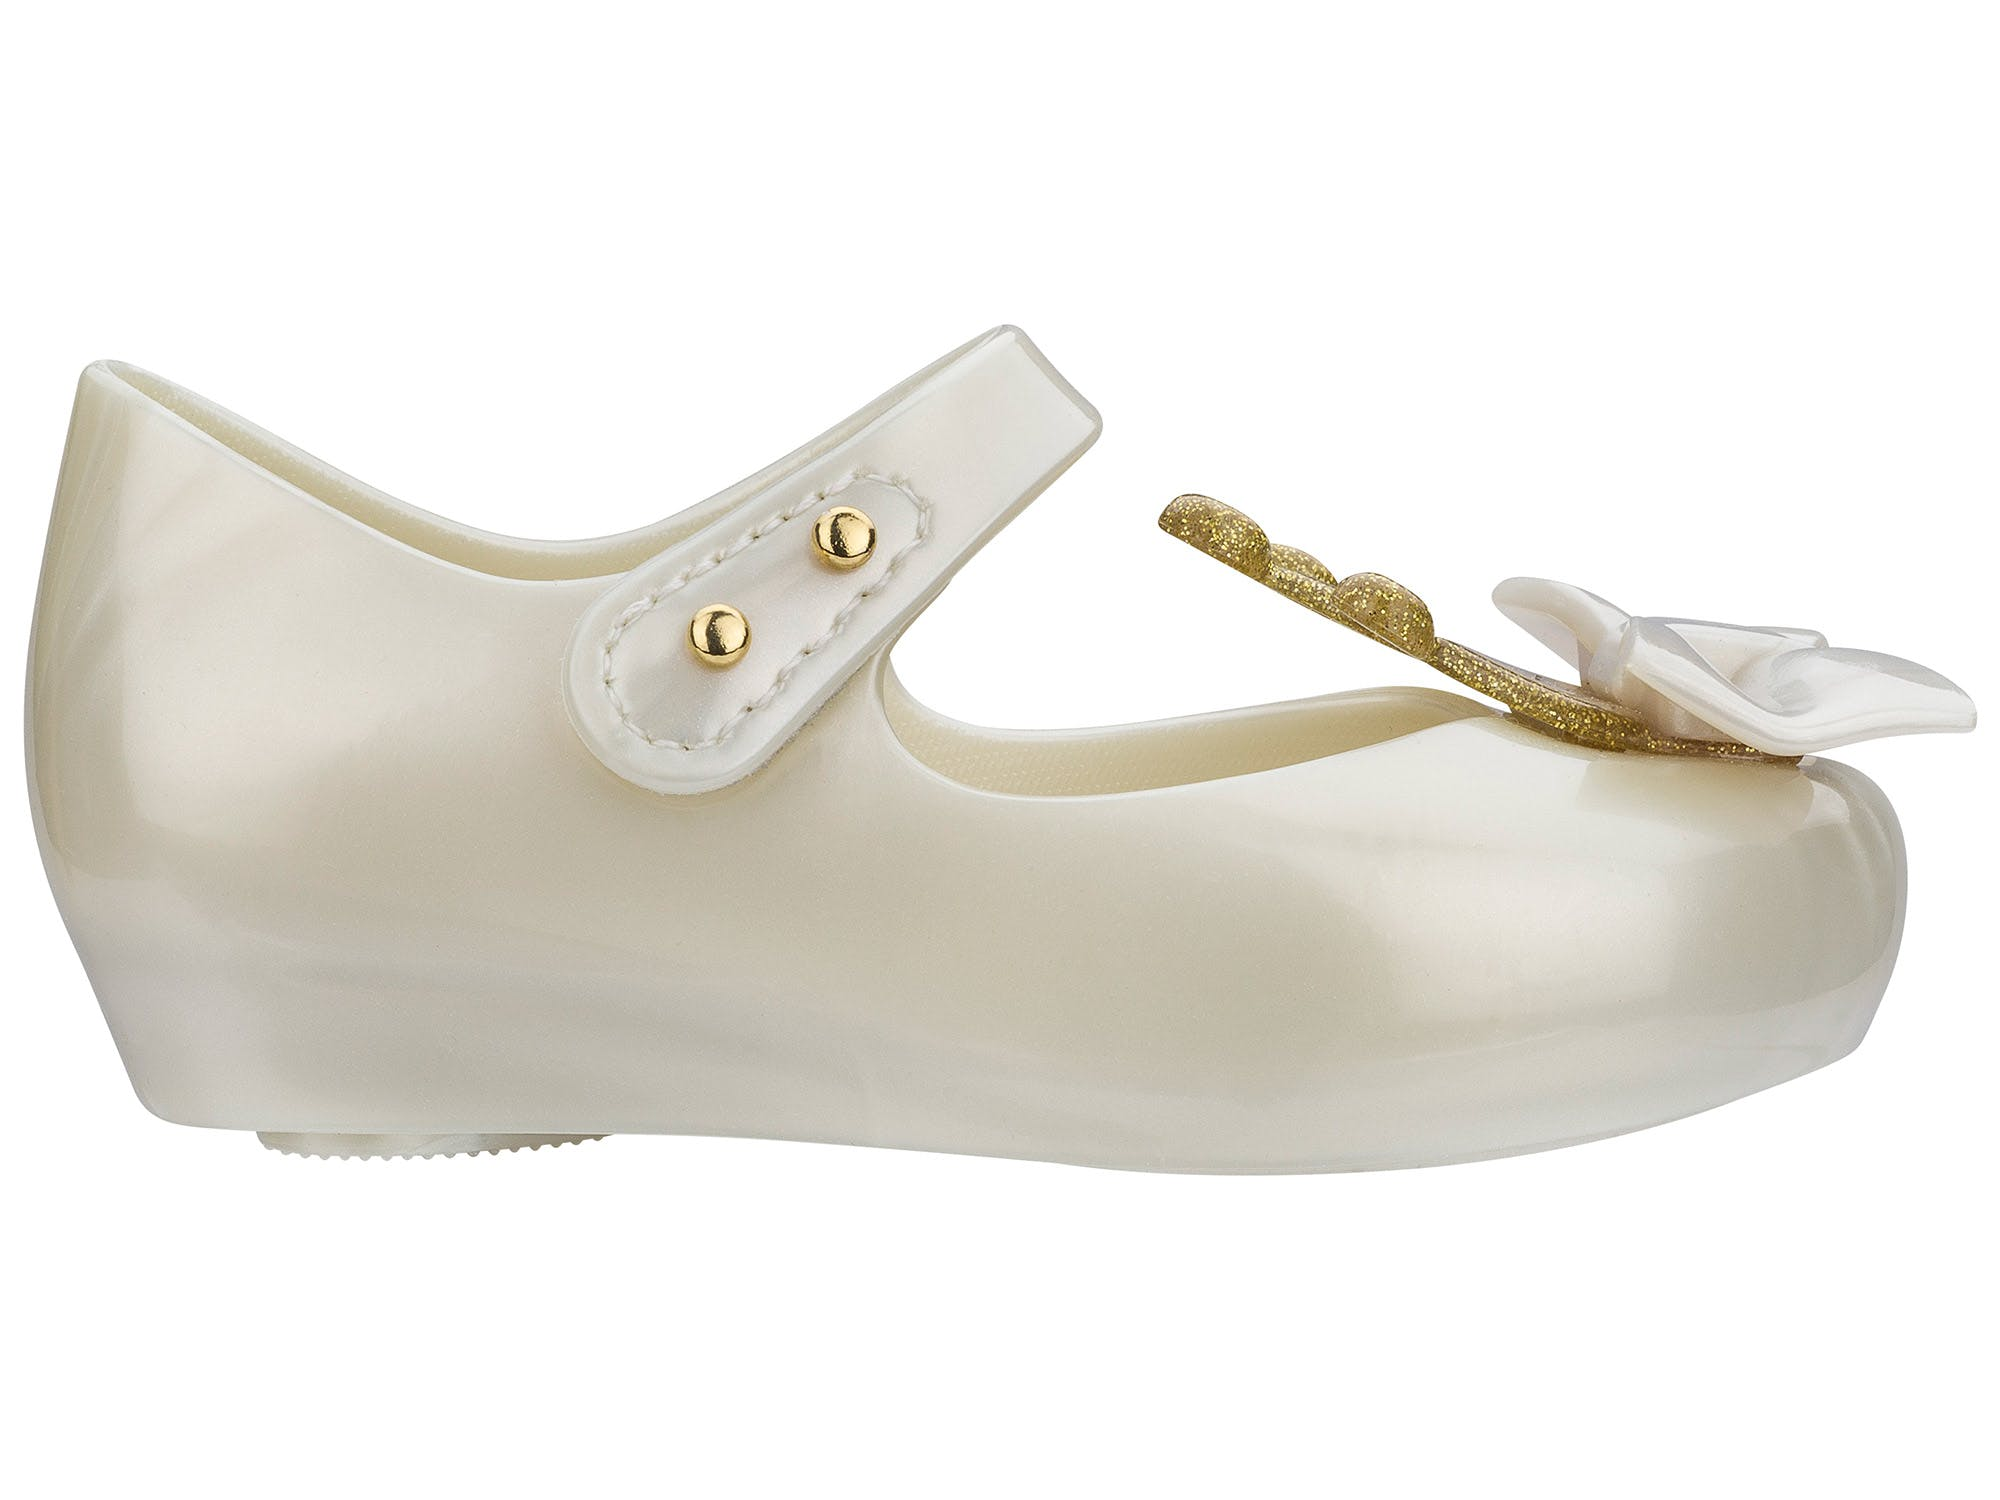 Mini Melissa Ultragirl Princess Branco Cintila Metal